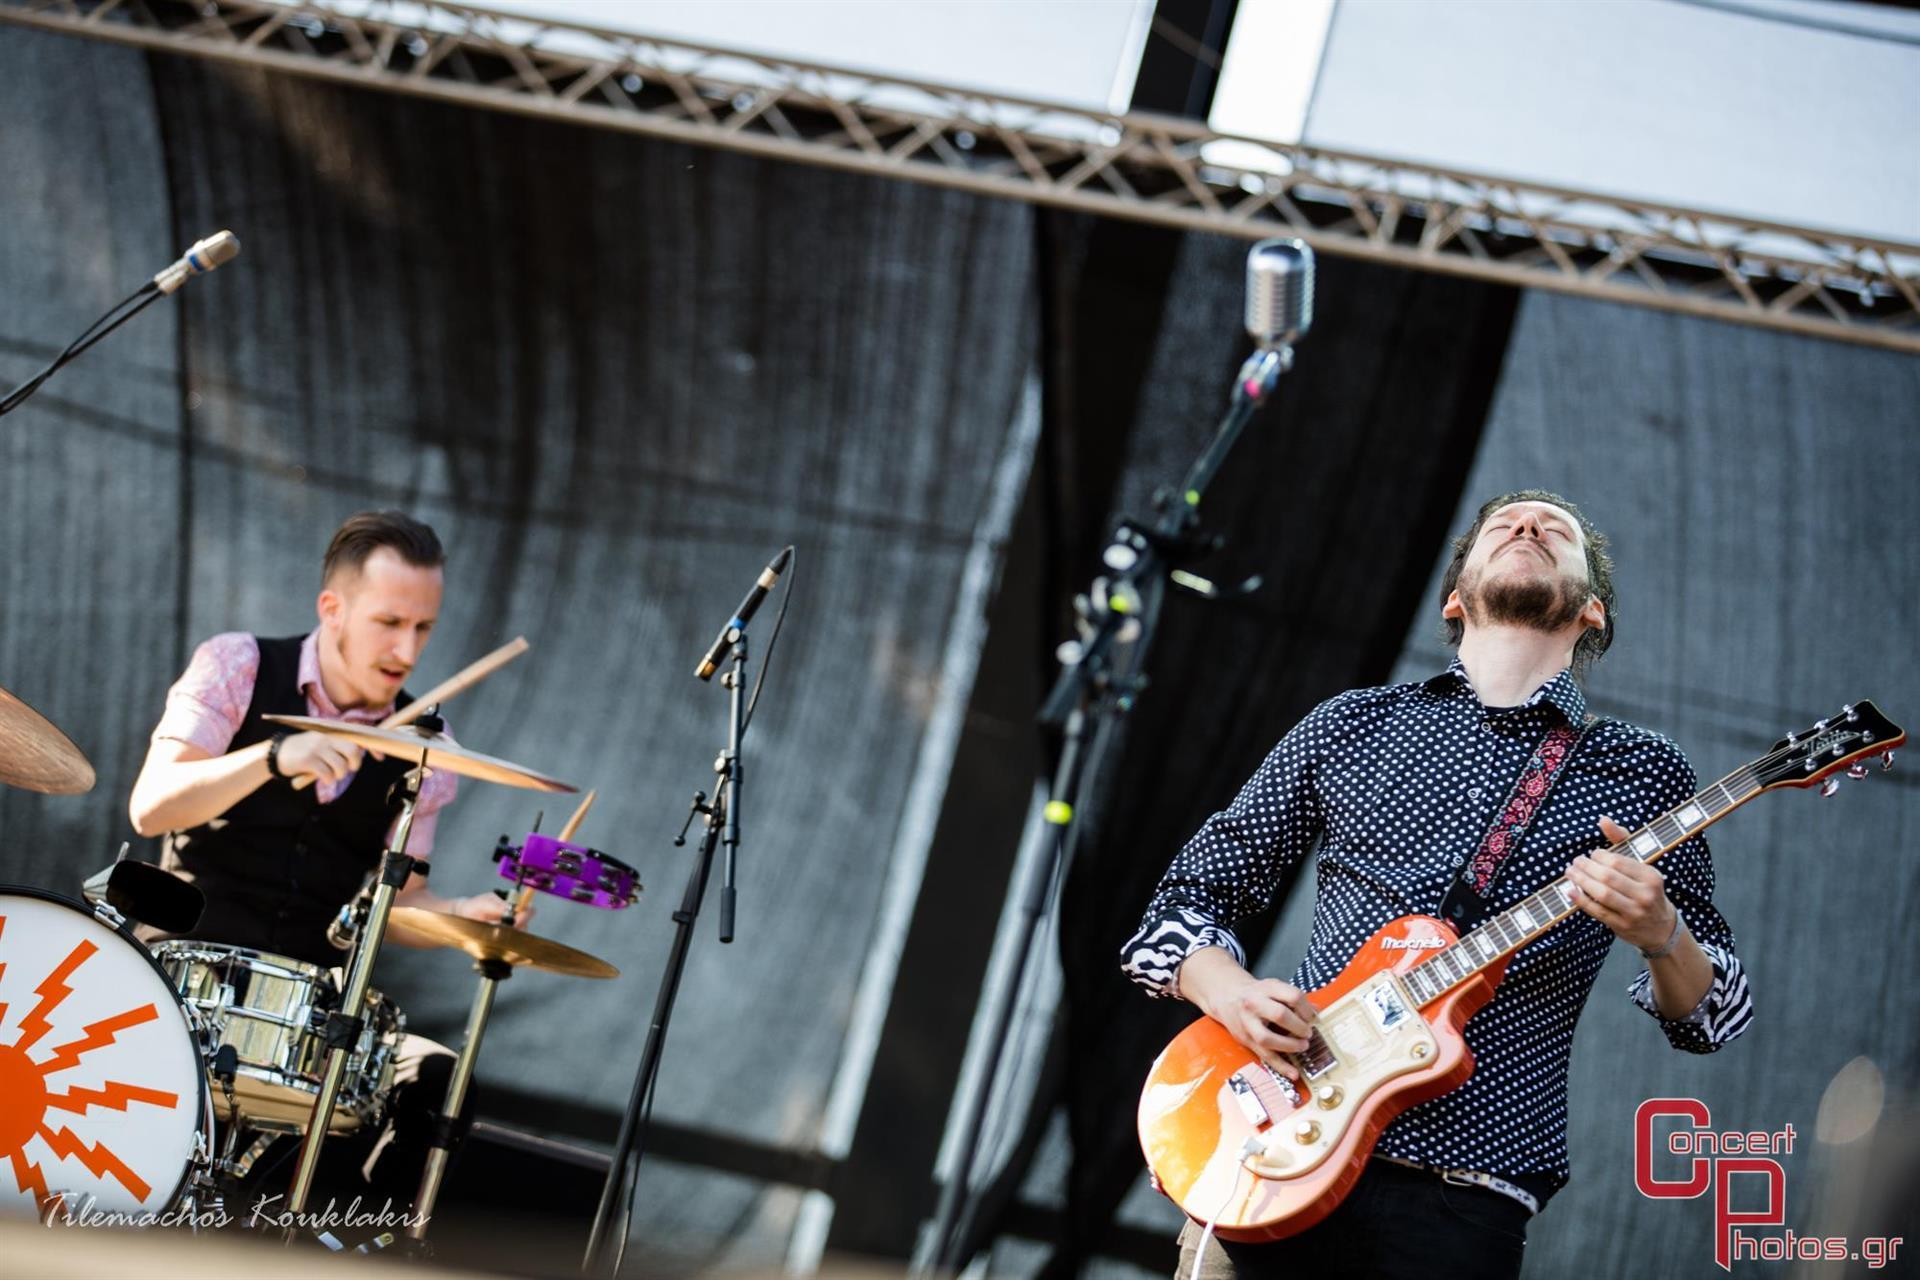 Rockwave 2015 - Black Keys-Black Angels-1000mods-The Big Nose Attack-Puta Volcano-Rockwave 2015 - Black Keys-Black Angels-1000mods photographer:  - 03_The Big Nose Attack_10